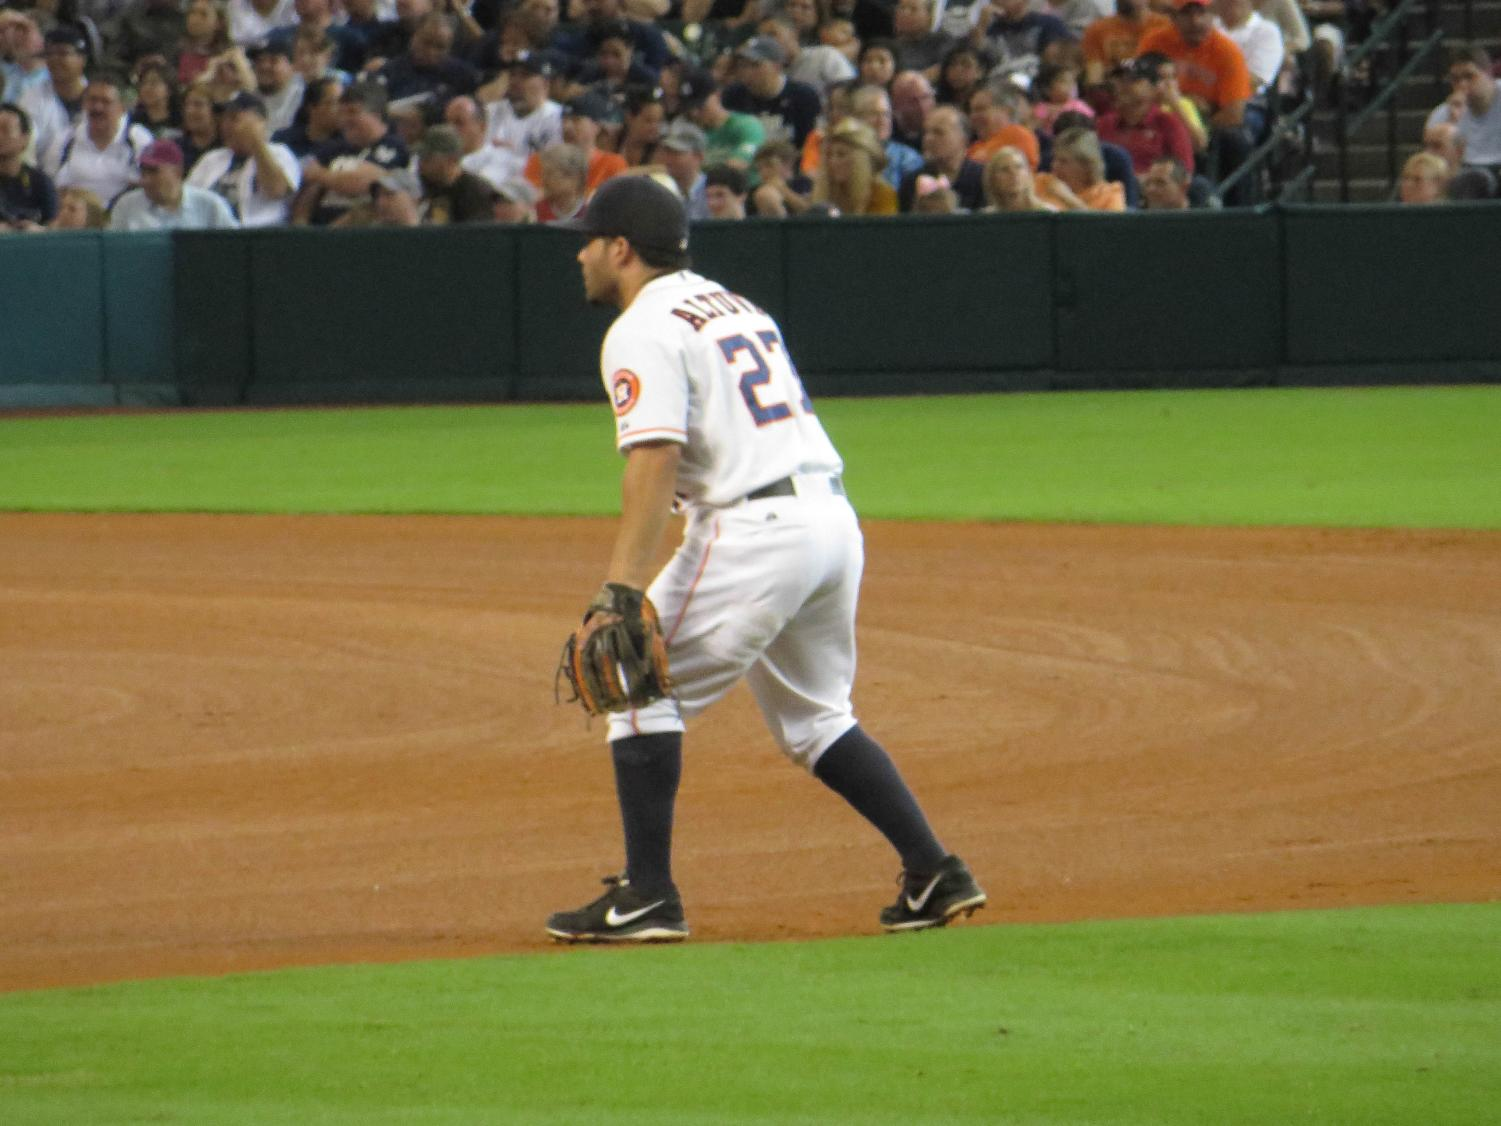 Punishments have been handed out to Jose Altuve and the Houston Astros, but many feel like the punishments  are too light